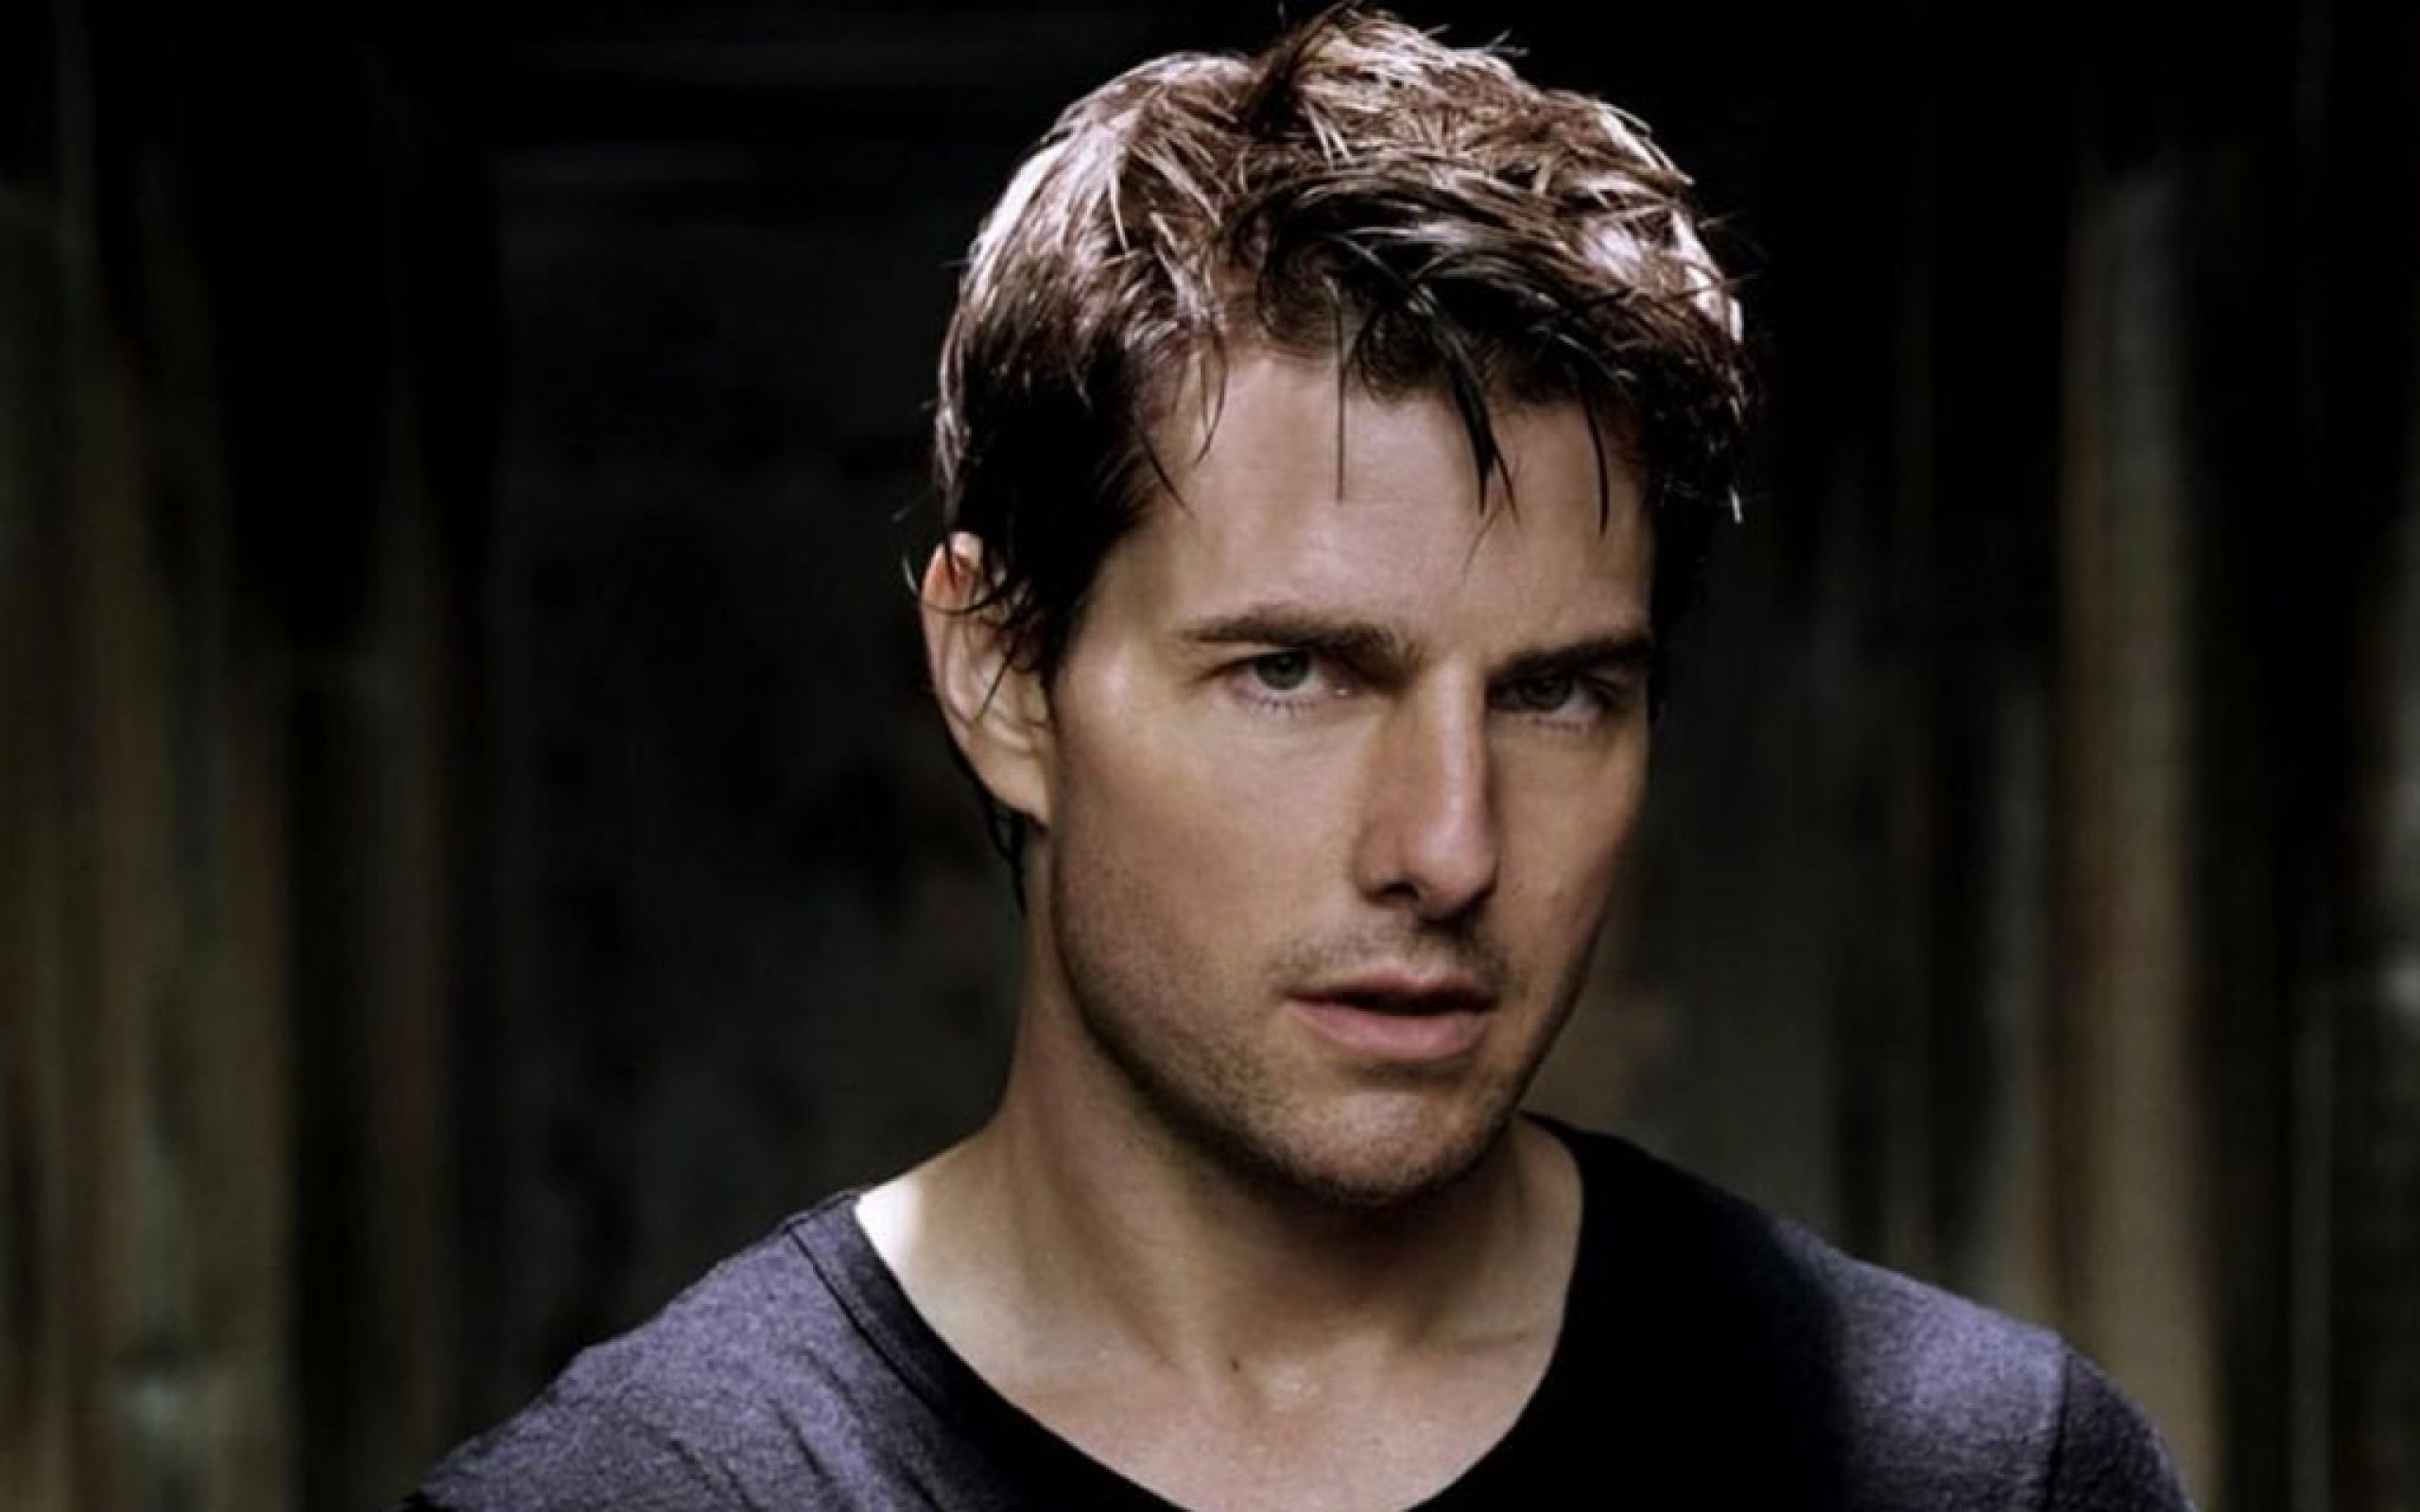 Tom Cruise Quotes 90 Wallpapers: Tom Cruise Computer Wallpapers, Desktop Backgrounds